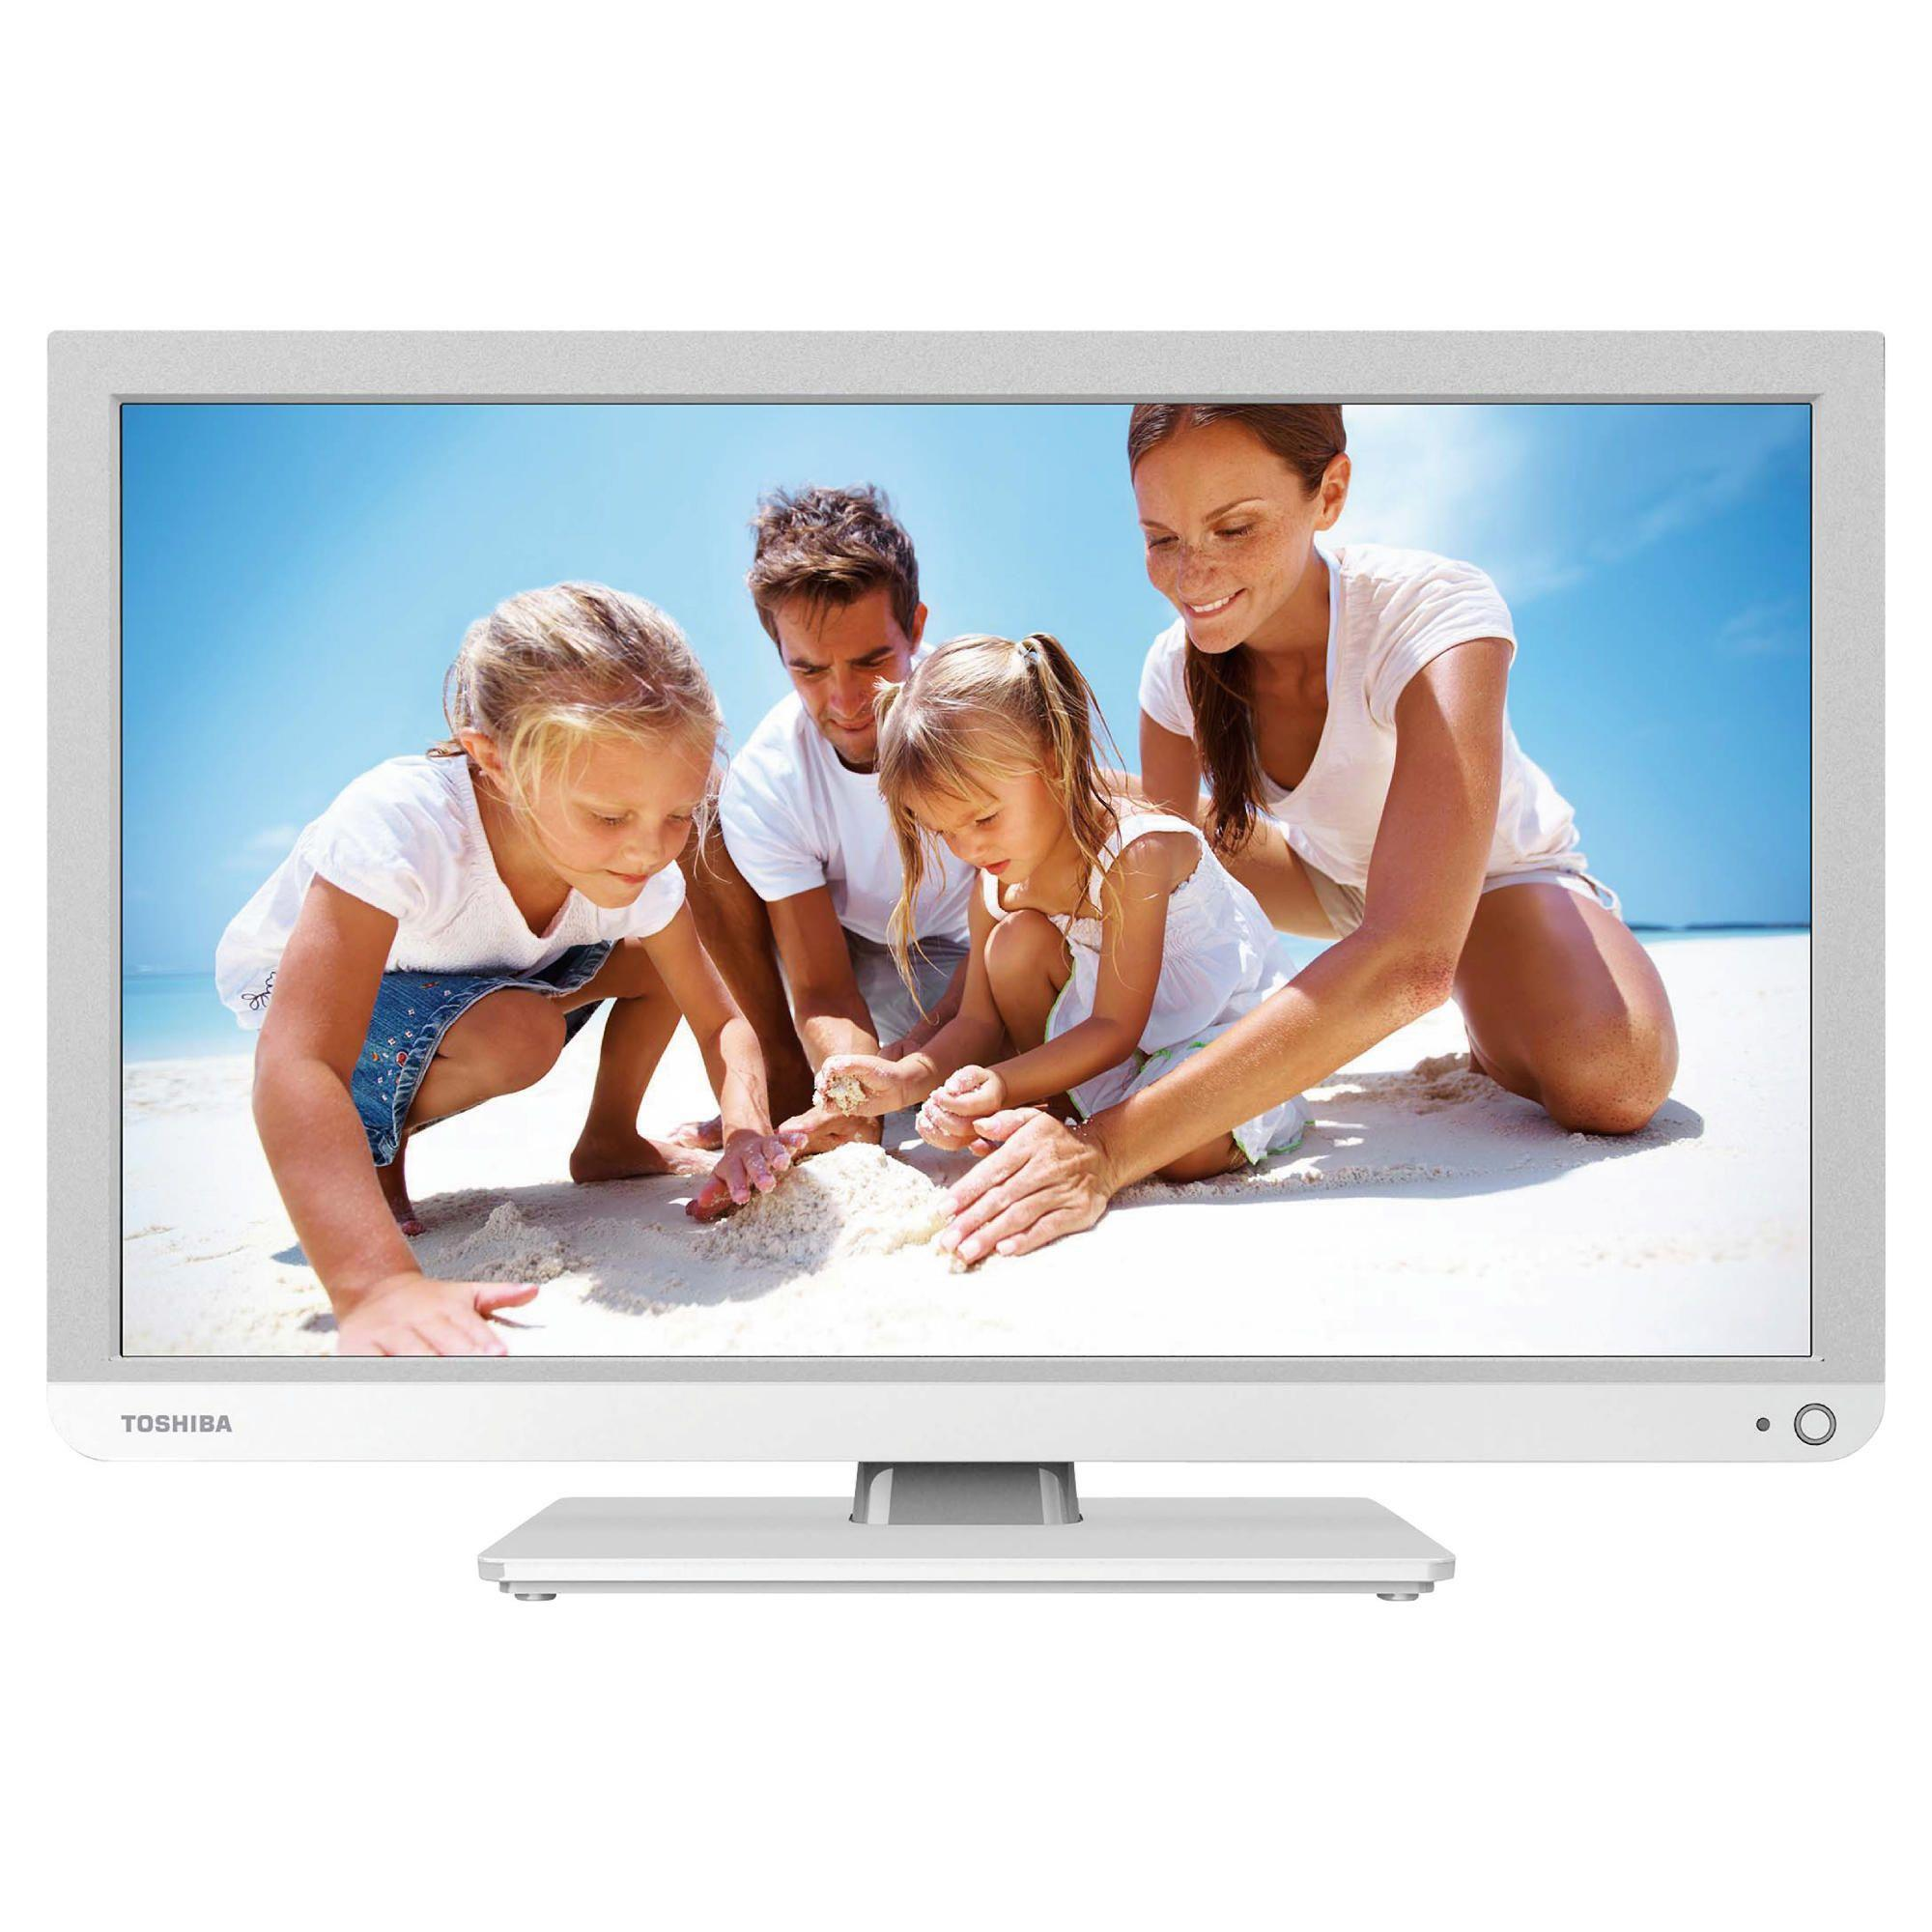 Toshiba 22D1334B 22 Inch LED TV/DVD Combi